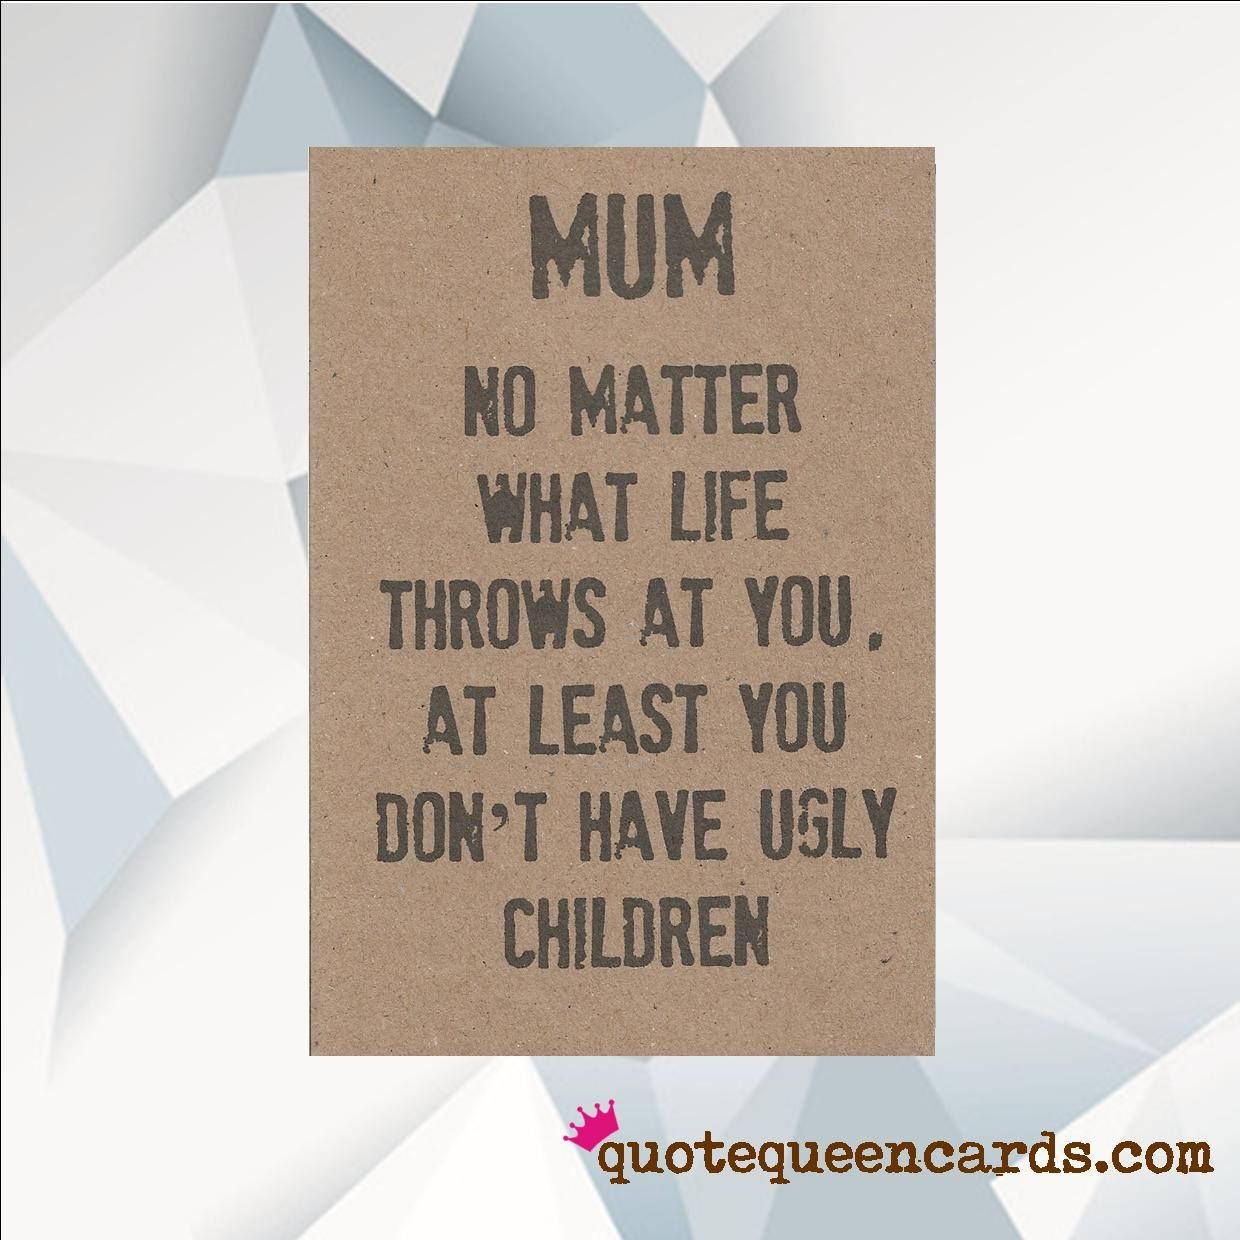 Mum No Matter What Life Throws At You At Least You Don't Have Ugly Children, Funny Birthday Card MUM, Funny Card, Birthday card for Mum, Mom